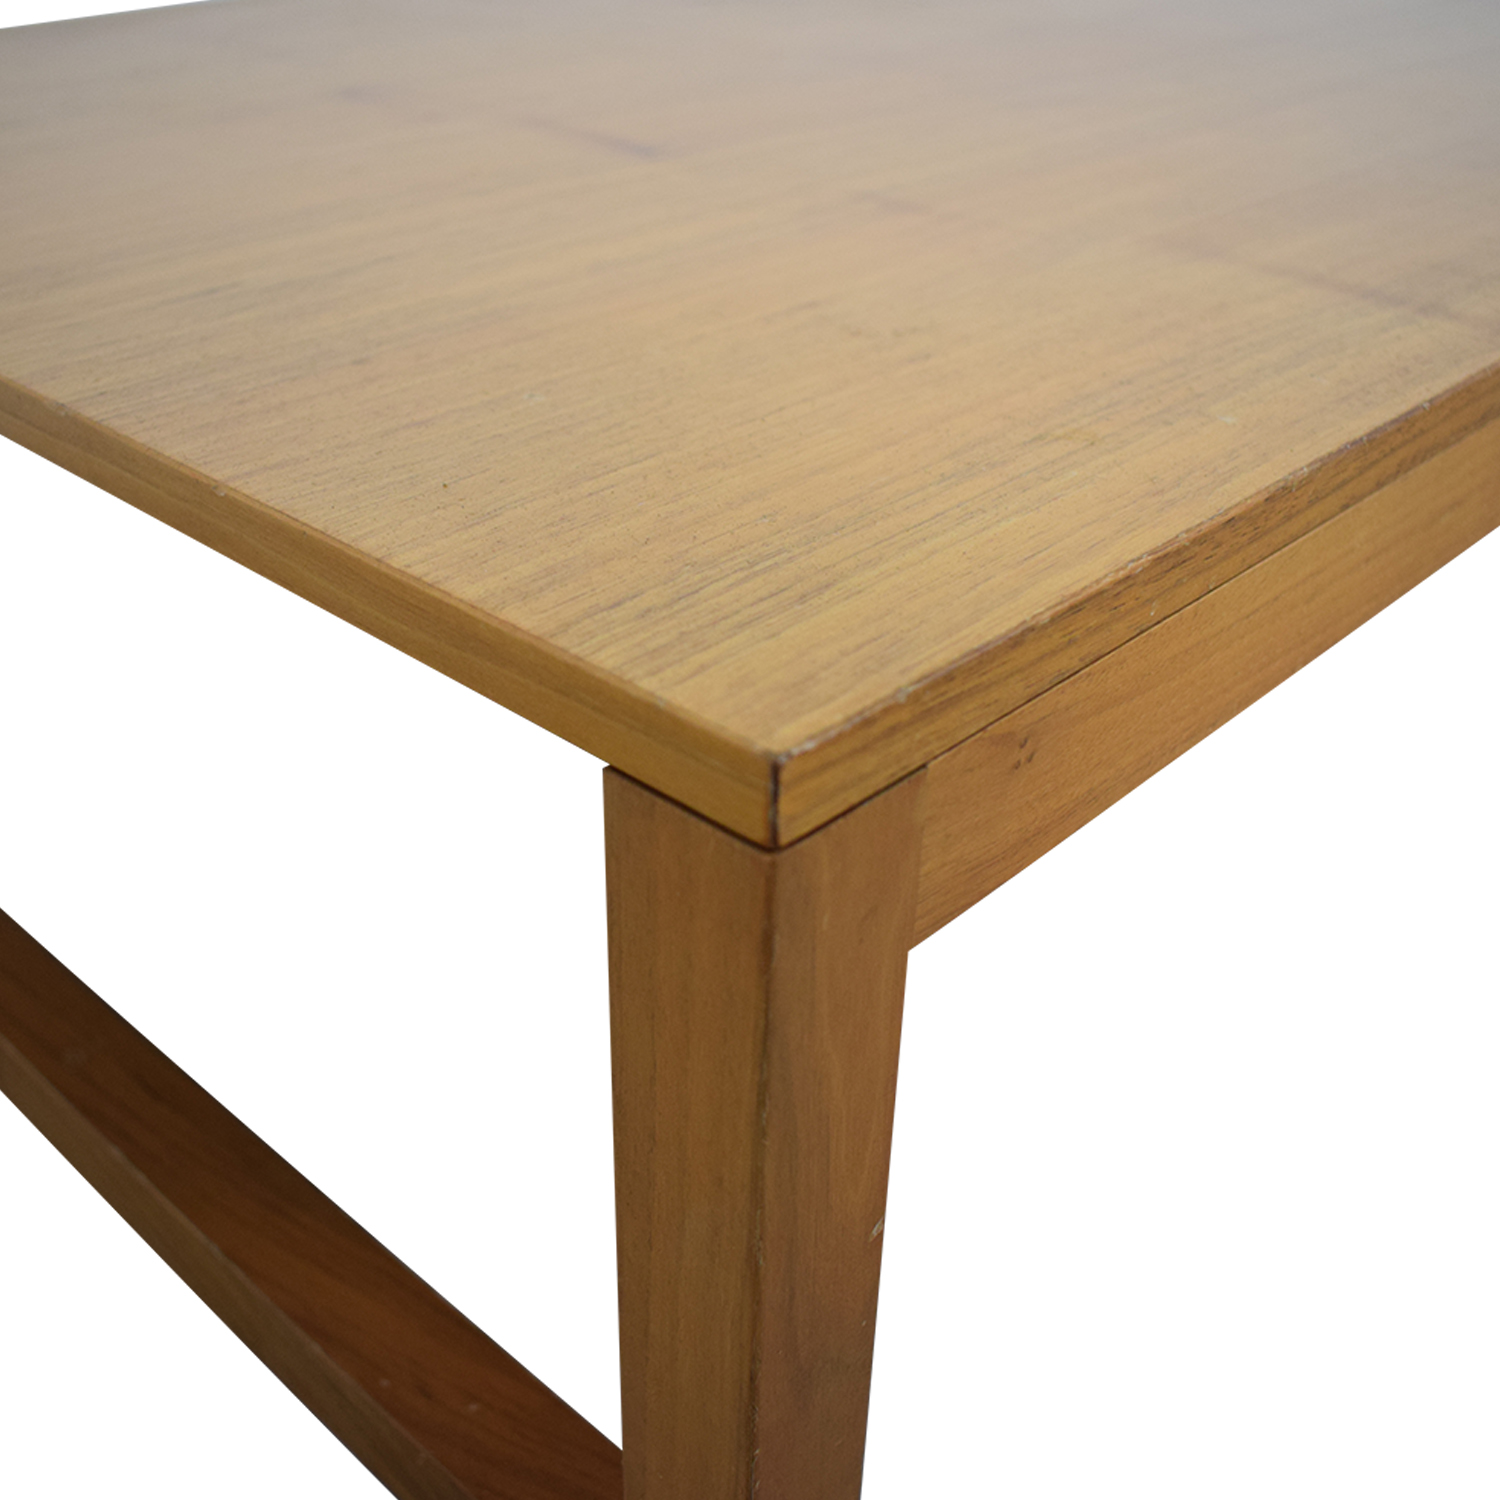 Hemnes Coffee Table Light Brown 90 X 90 Cm: Design Within Reach Design With Reach Wood